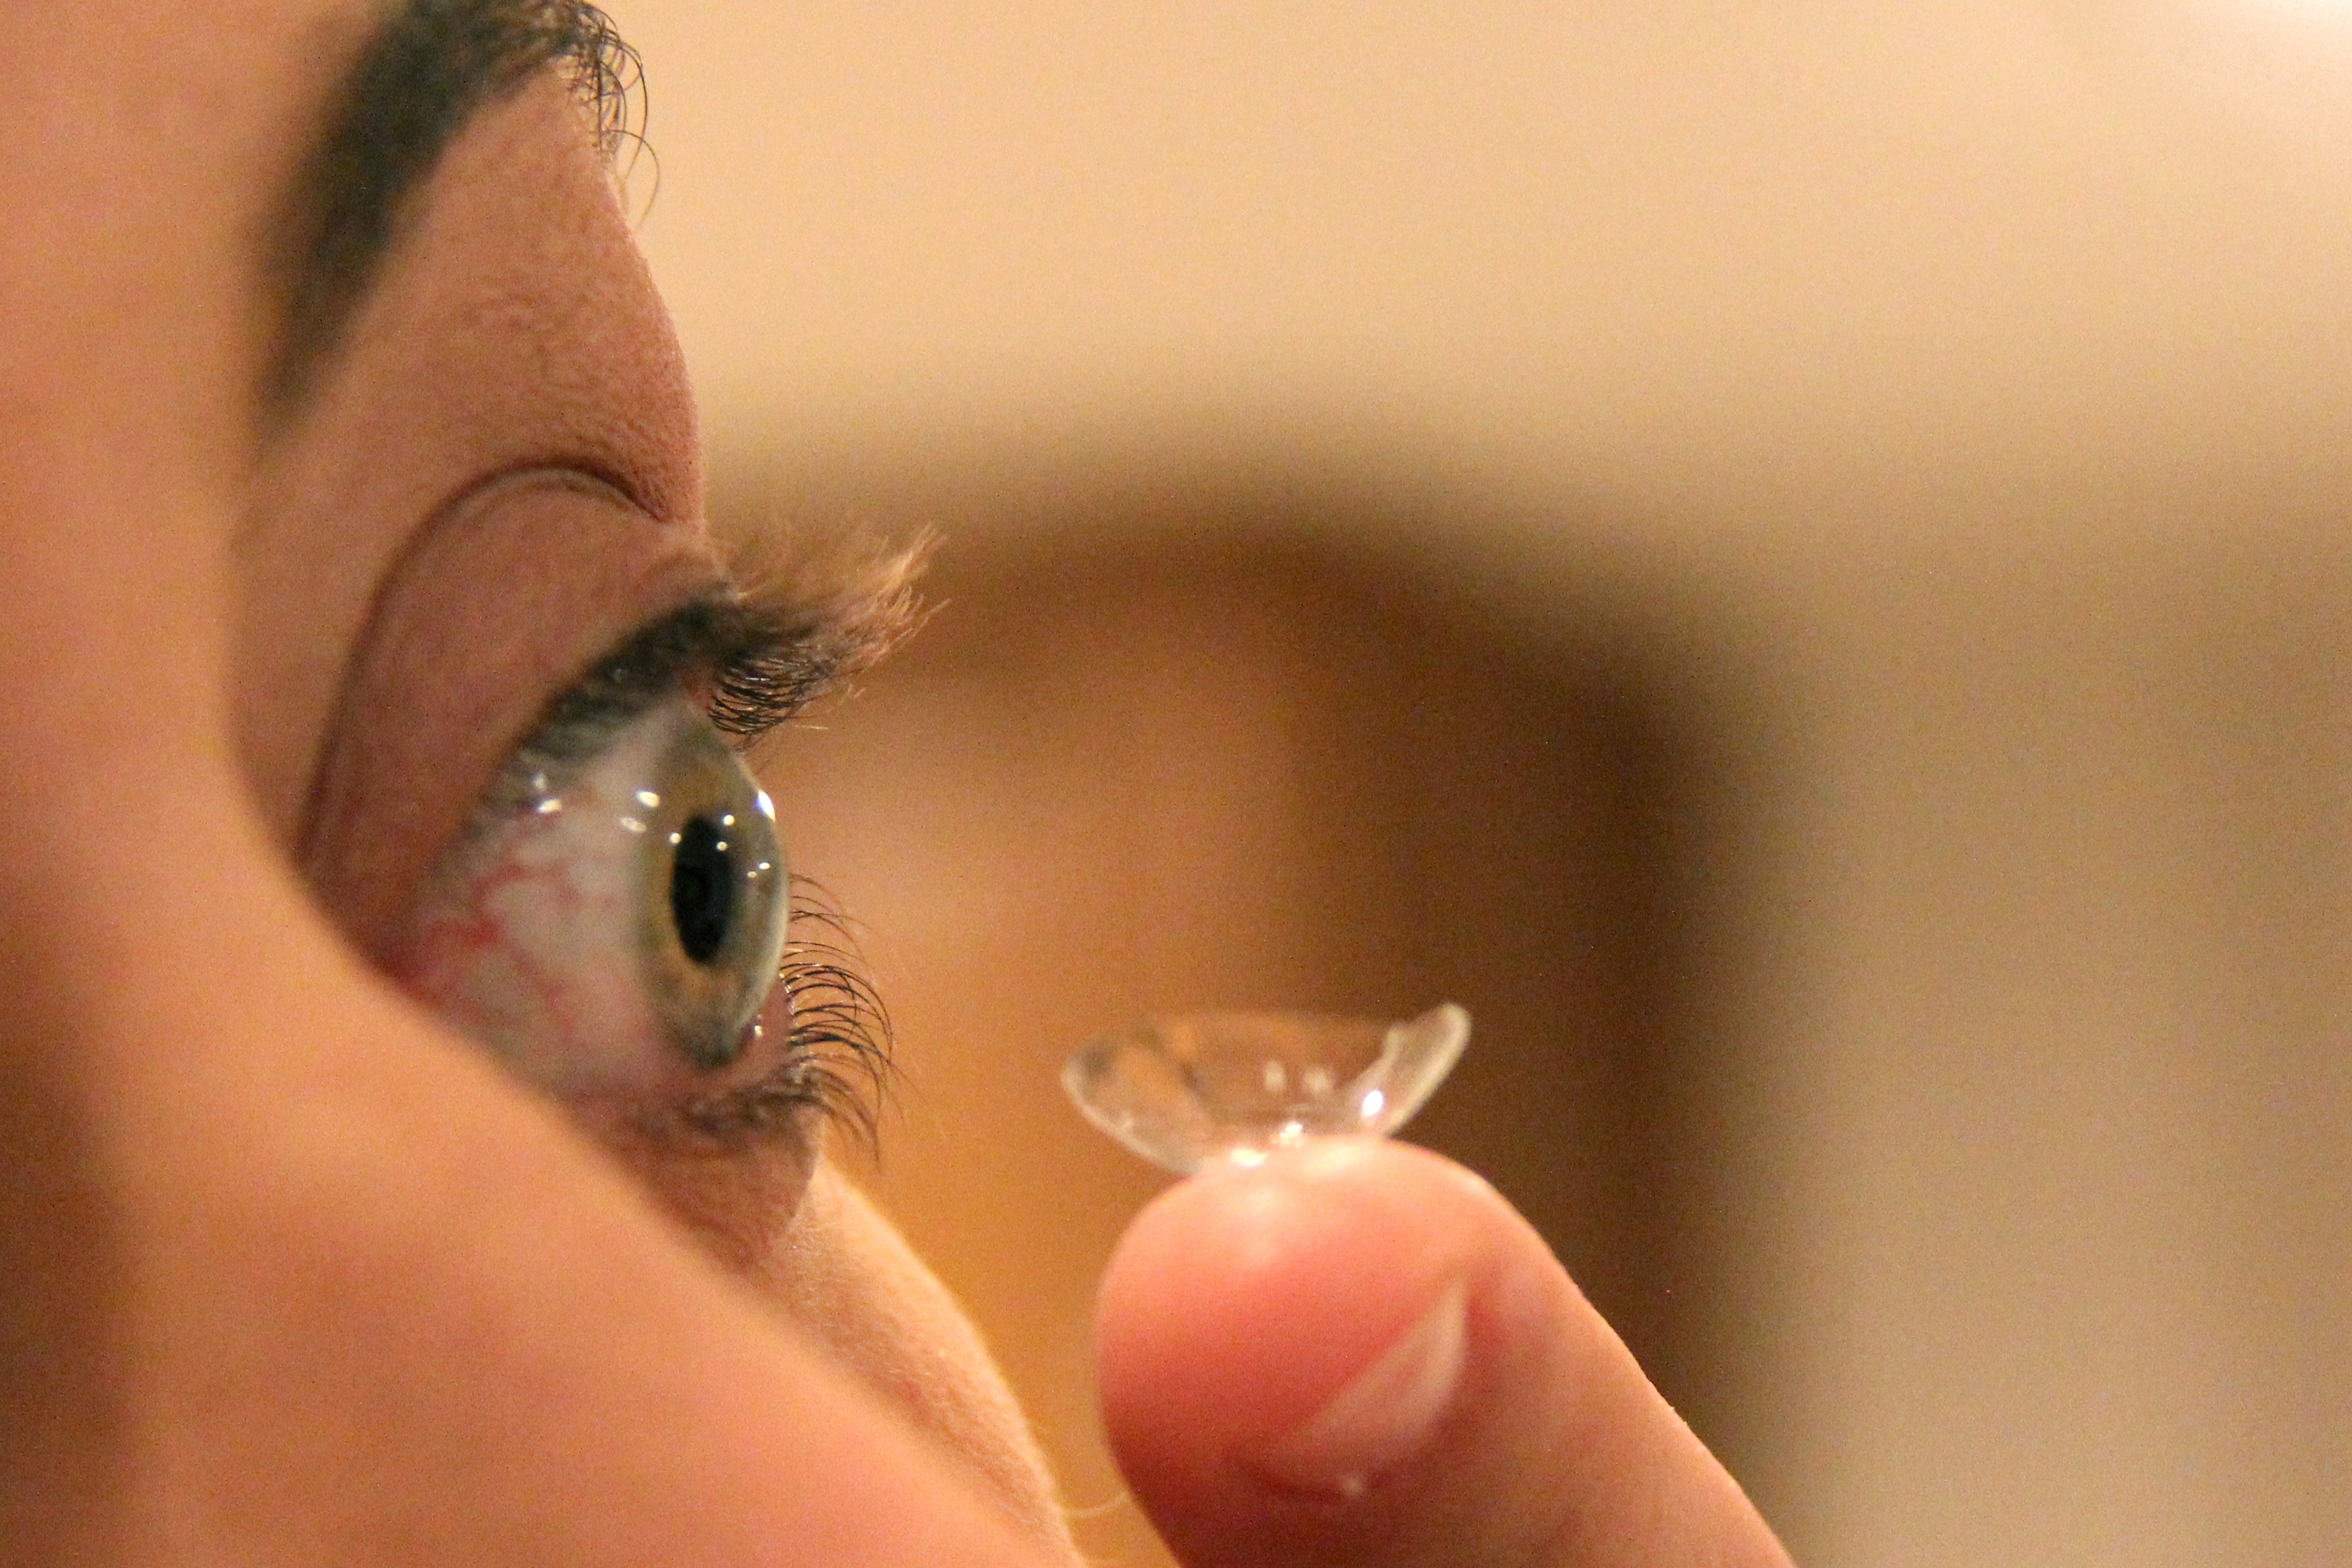 How Can I Tell If My Contact Lens Is in My Eye?